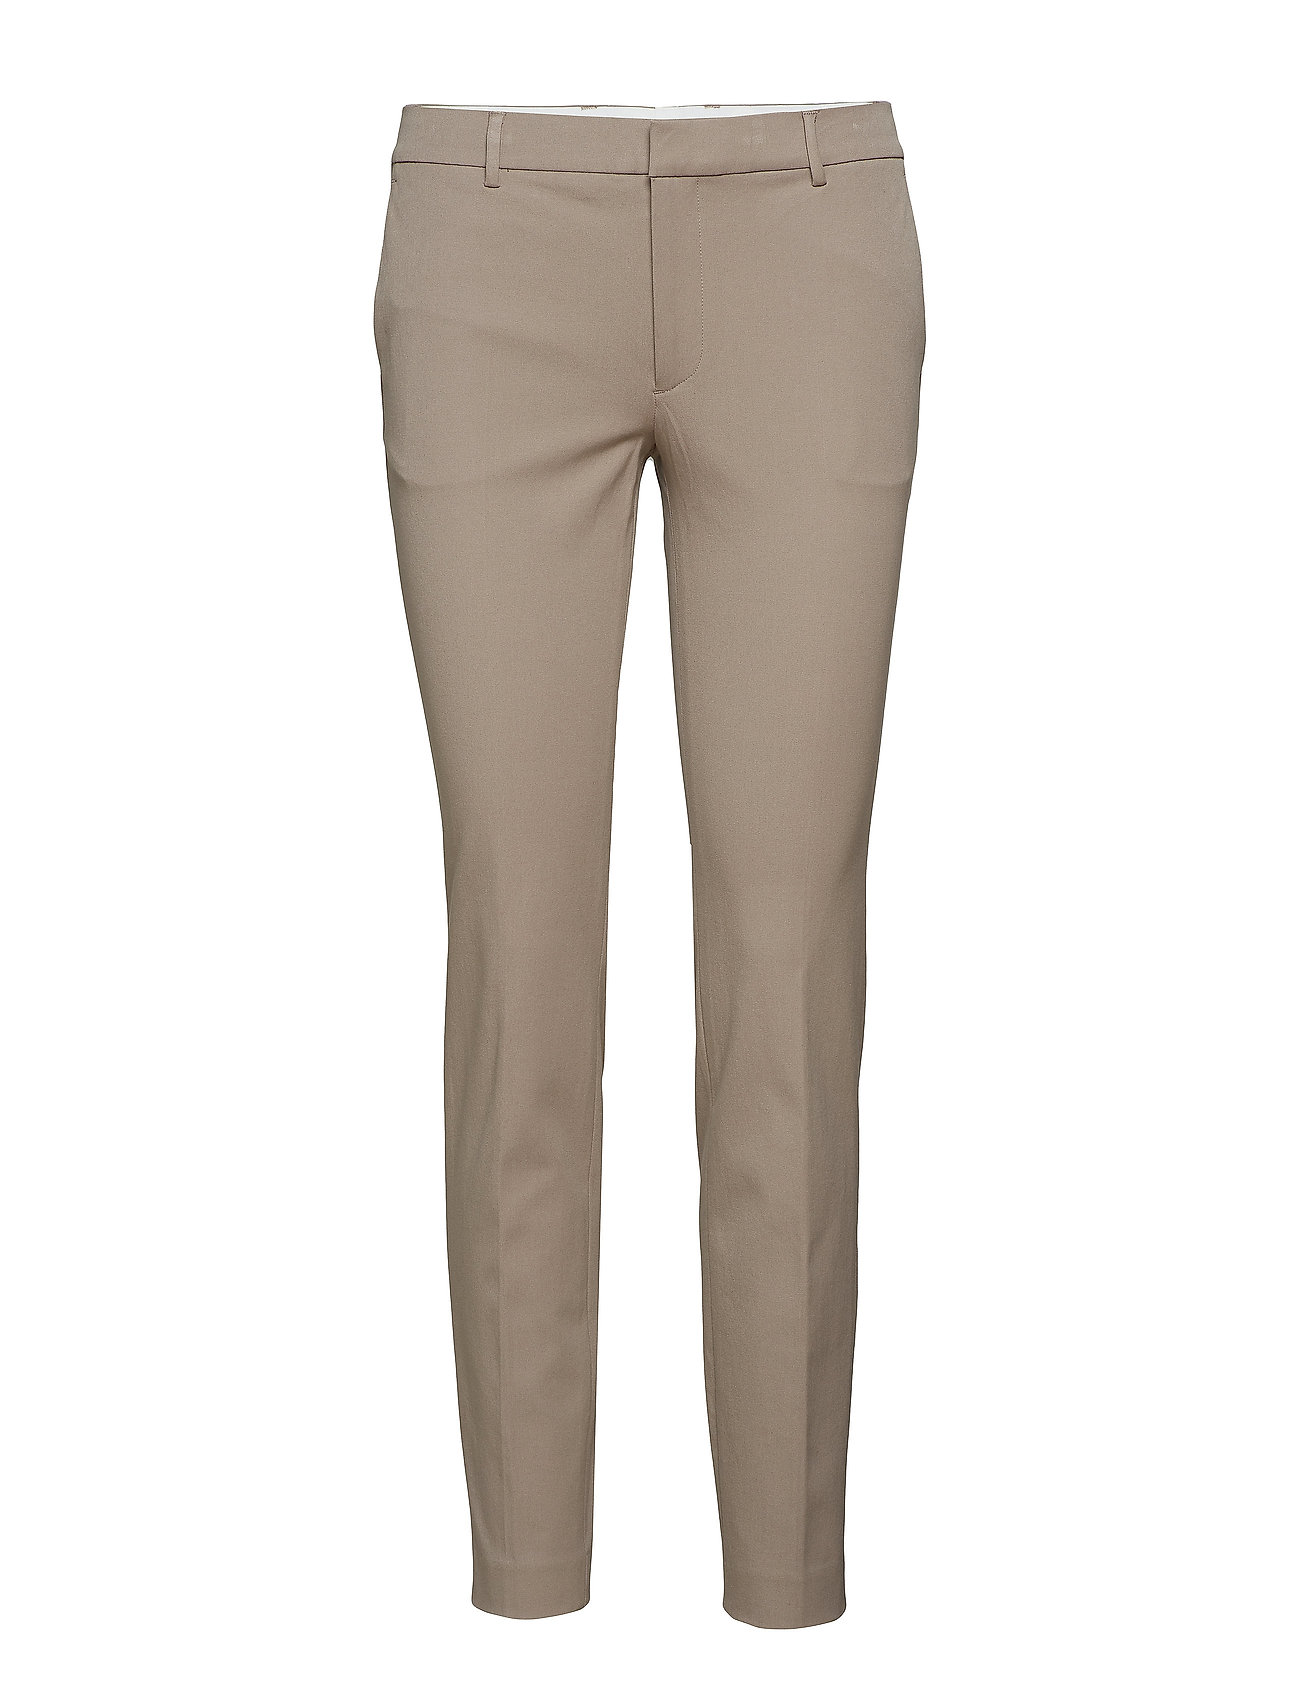 Filippa K Sophia Cotton Stretch Trousers - TAUPE